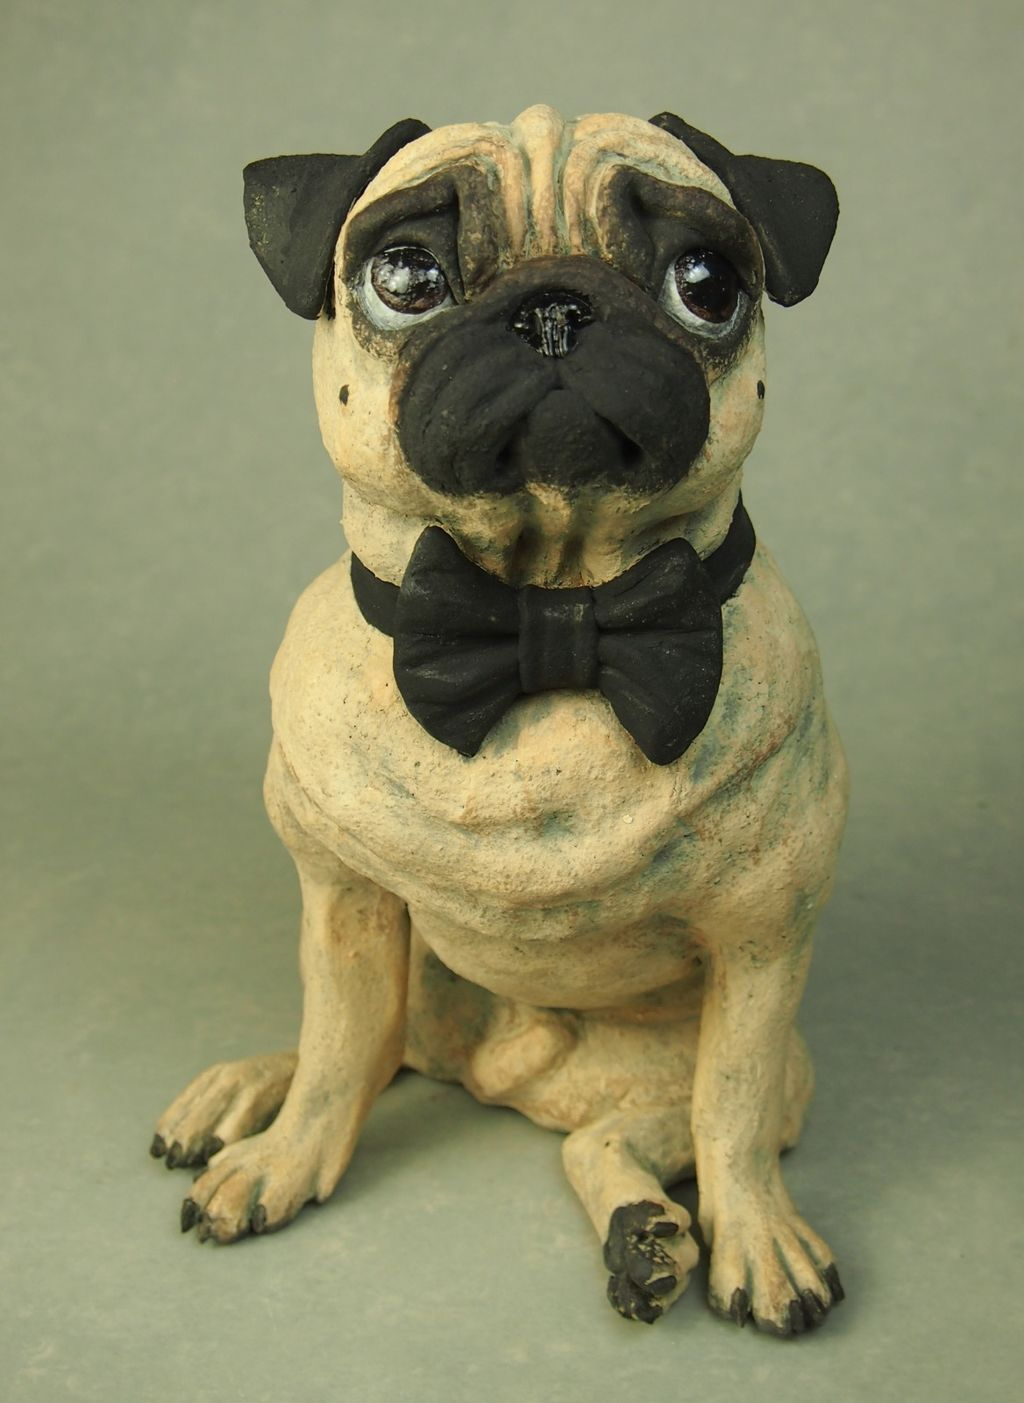 Party Pug, 2019